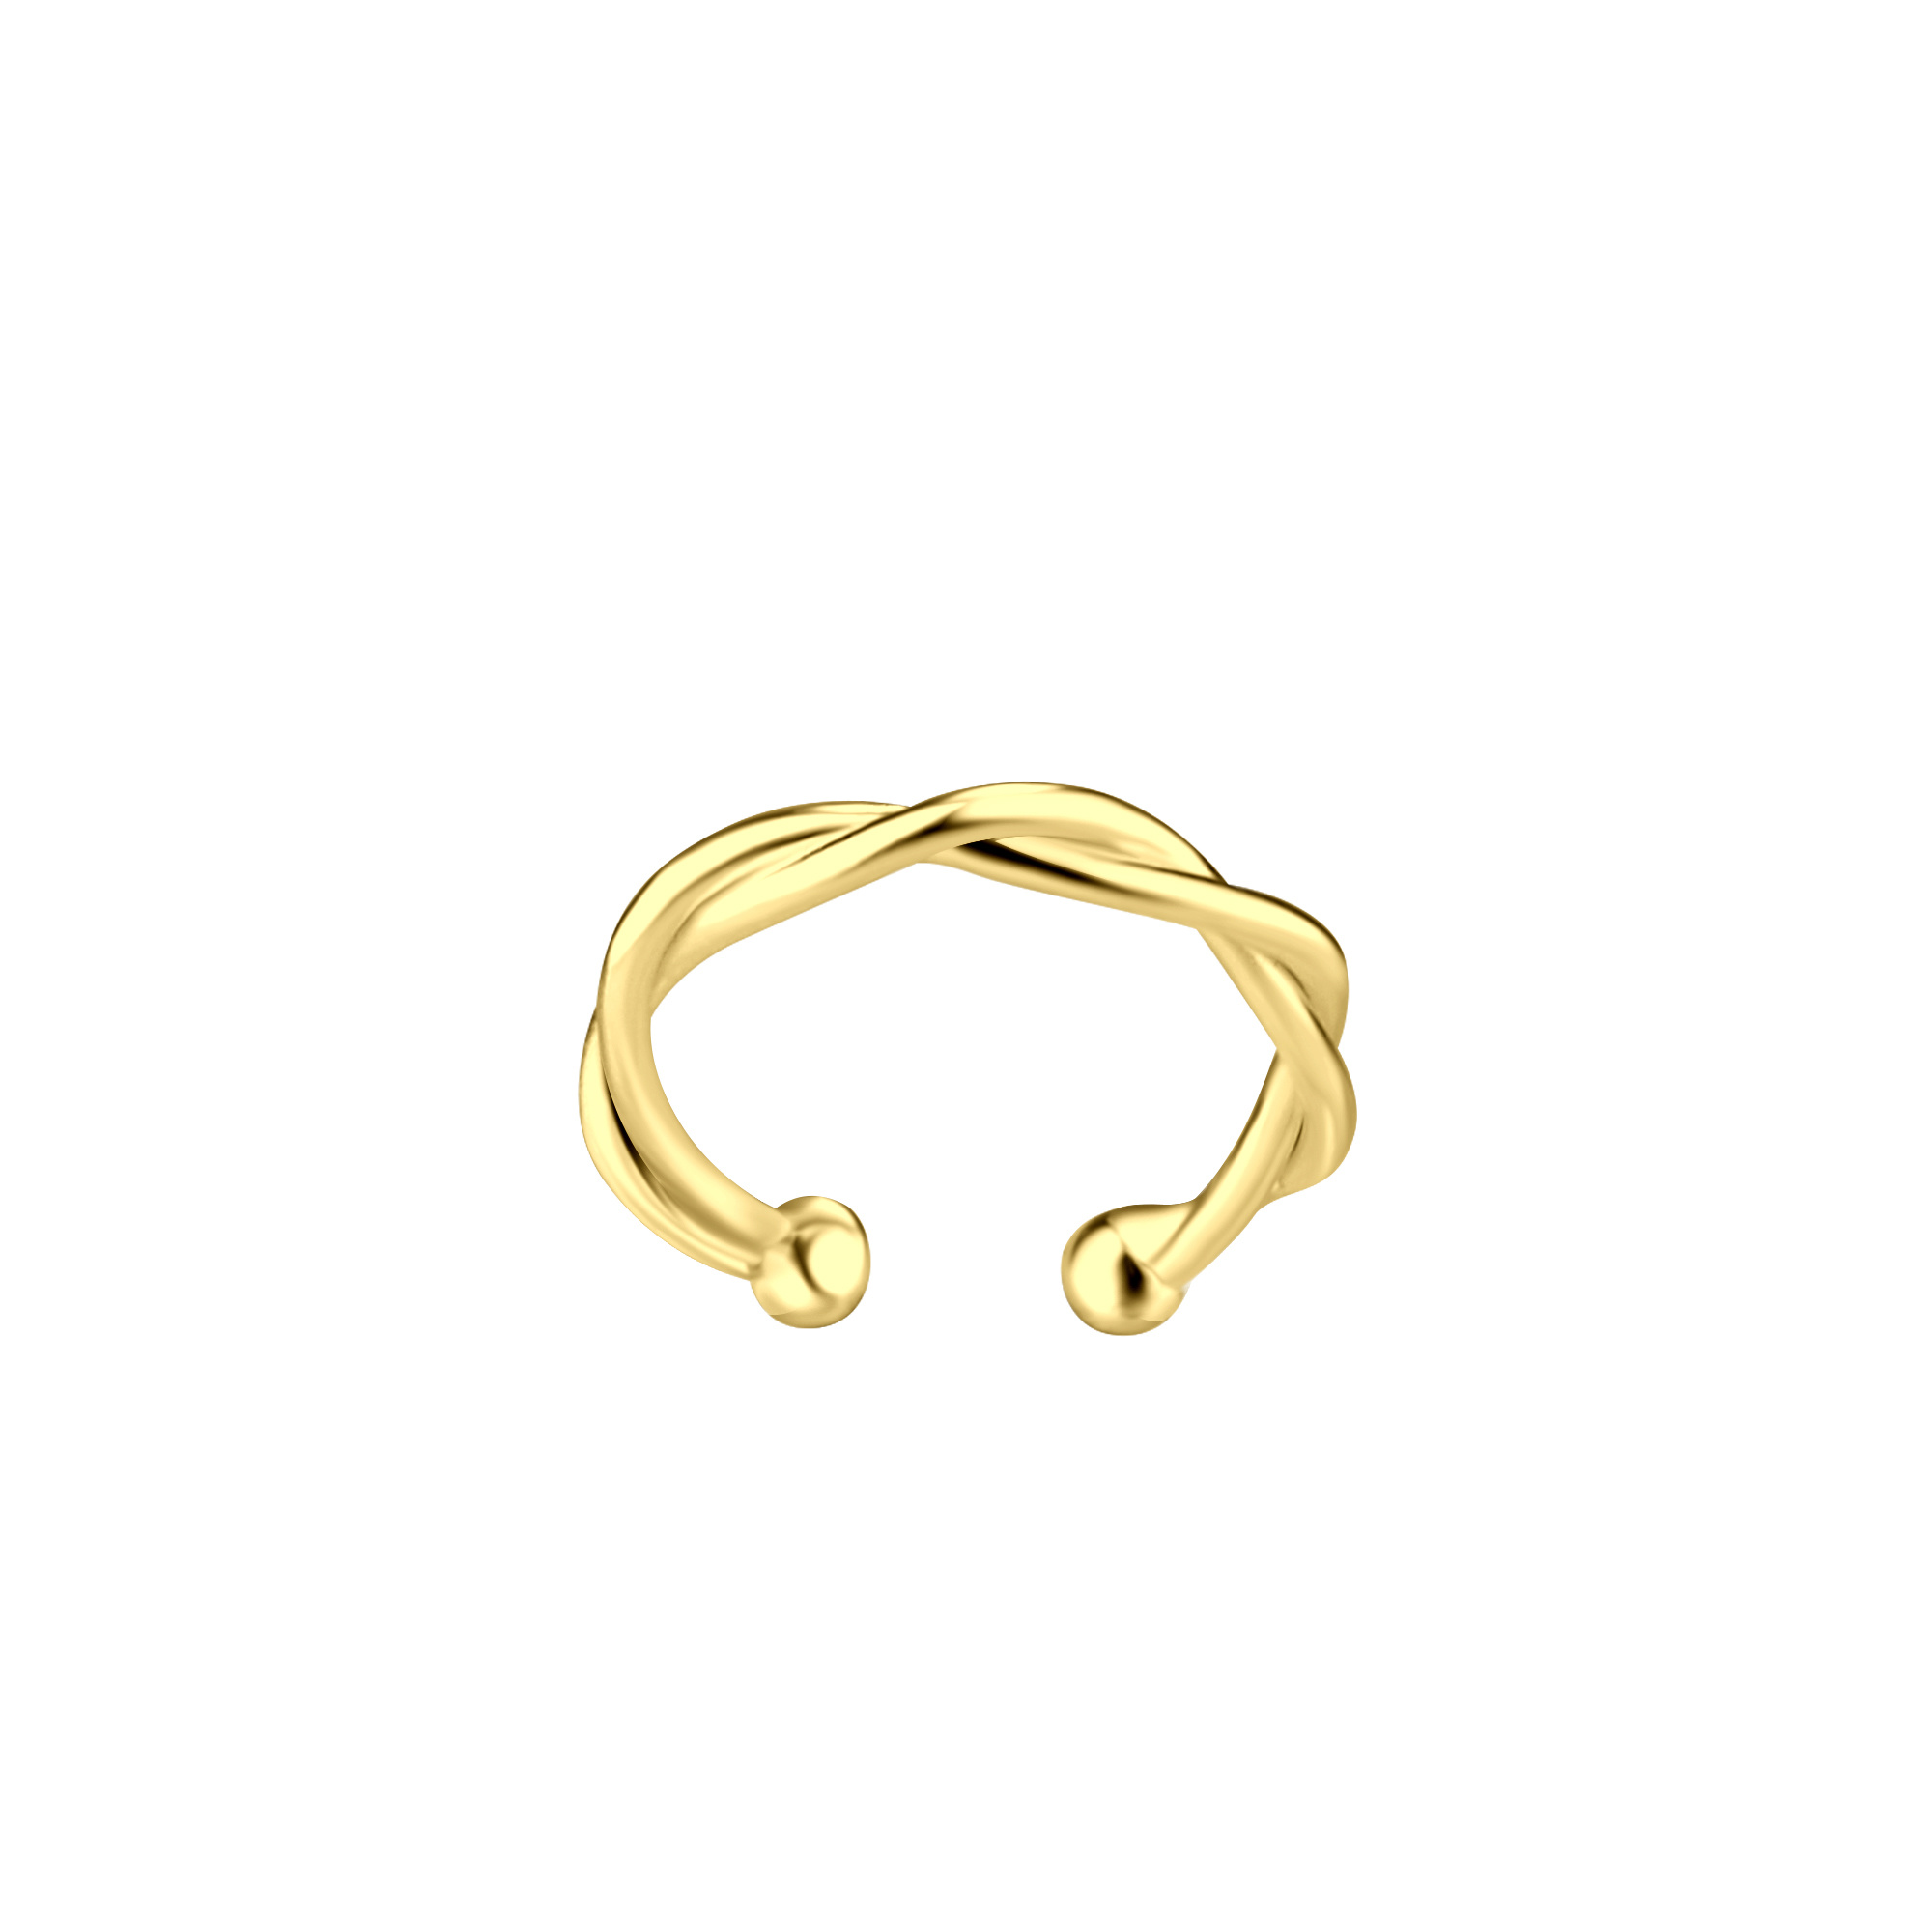 Small braided ear clip - 925 sterling silver - gold-1